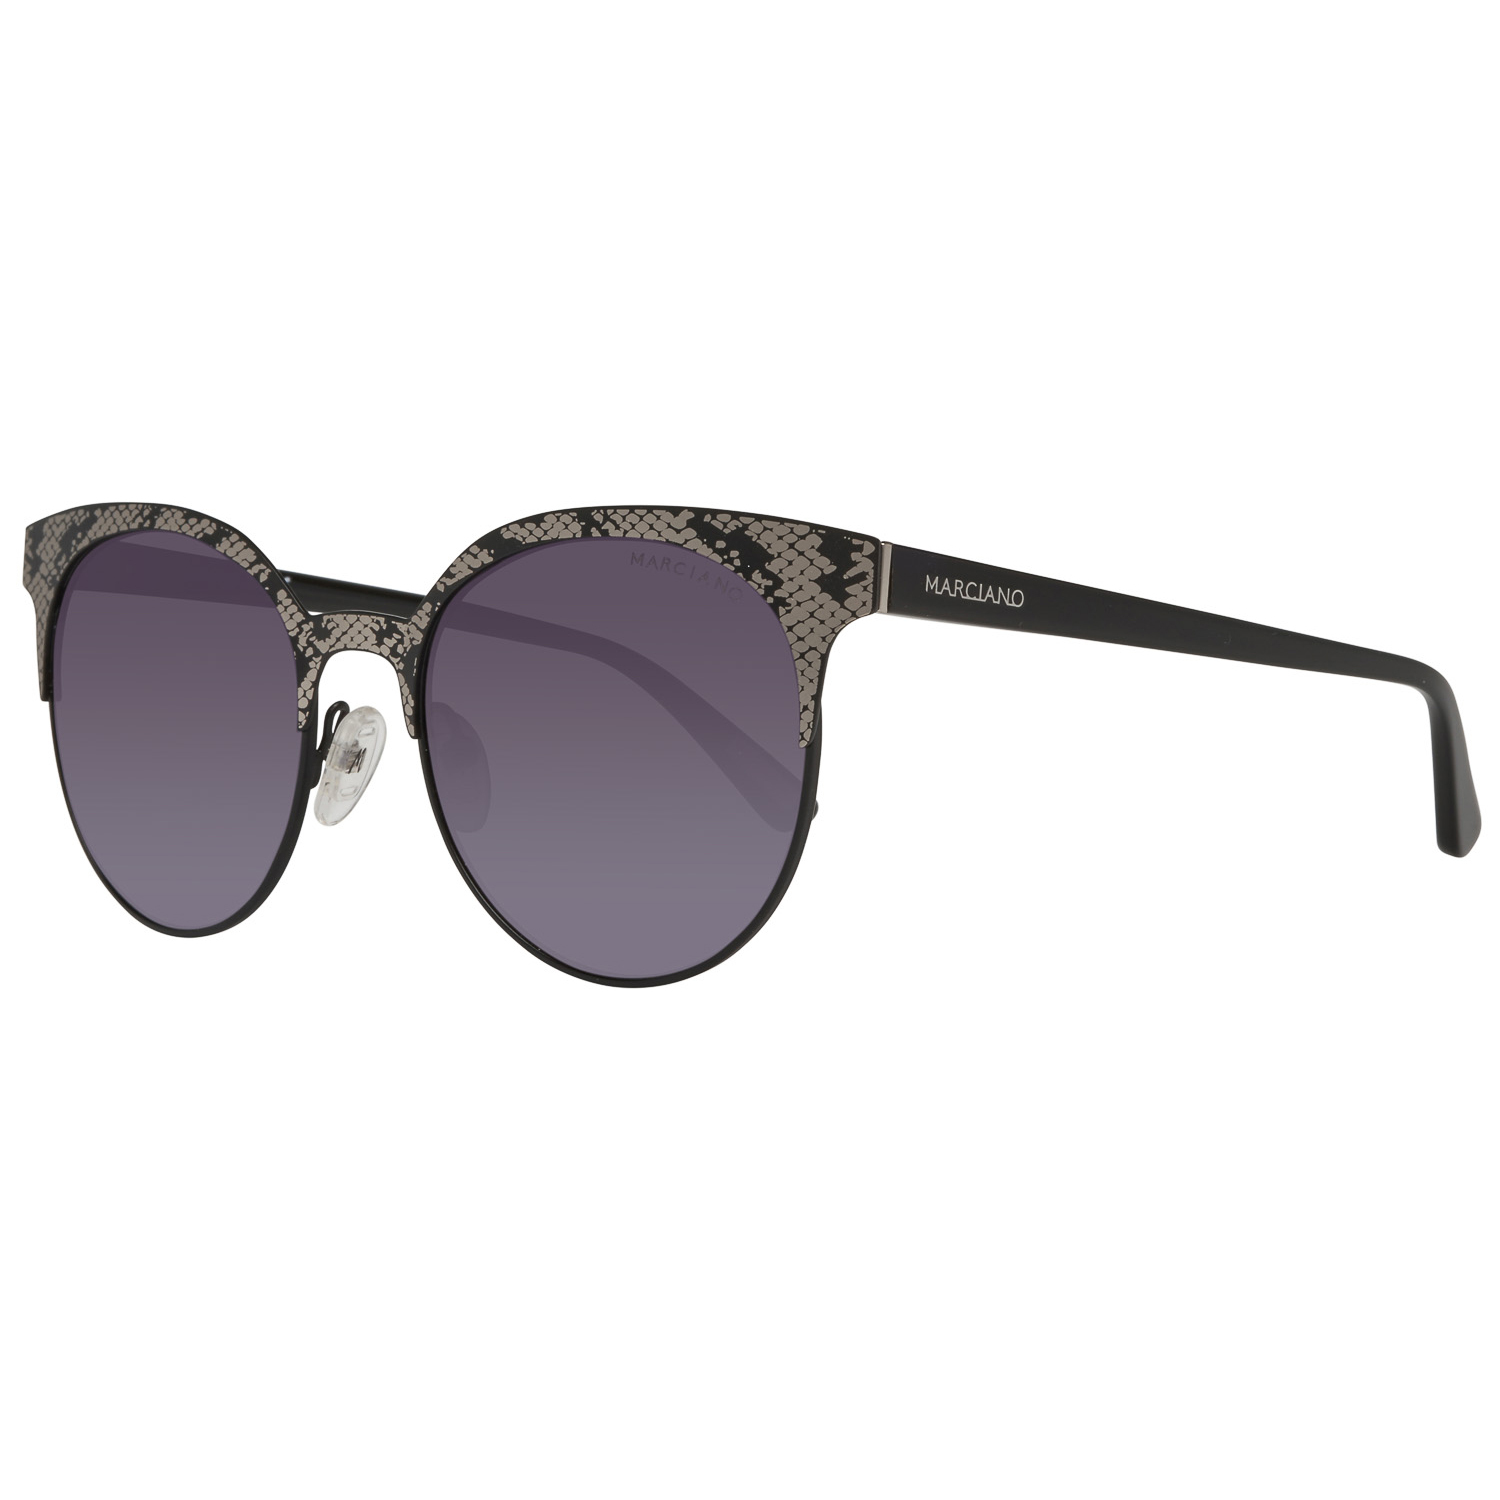 Guess by Marciano Sunglasses GM0773 02B 52 Black